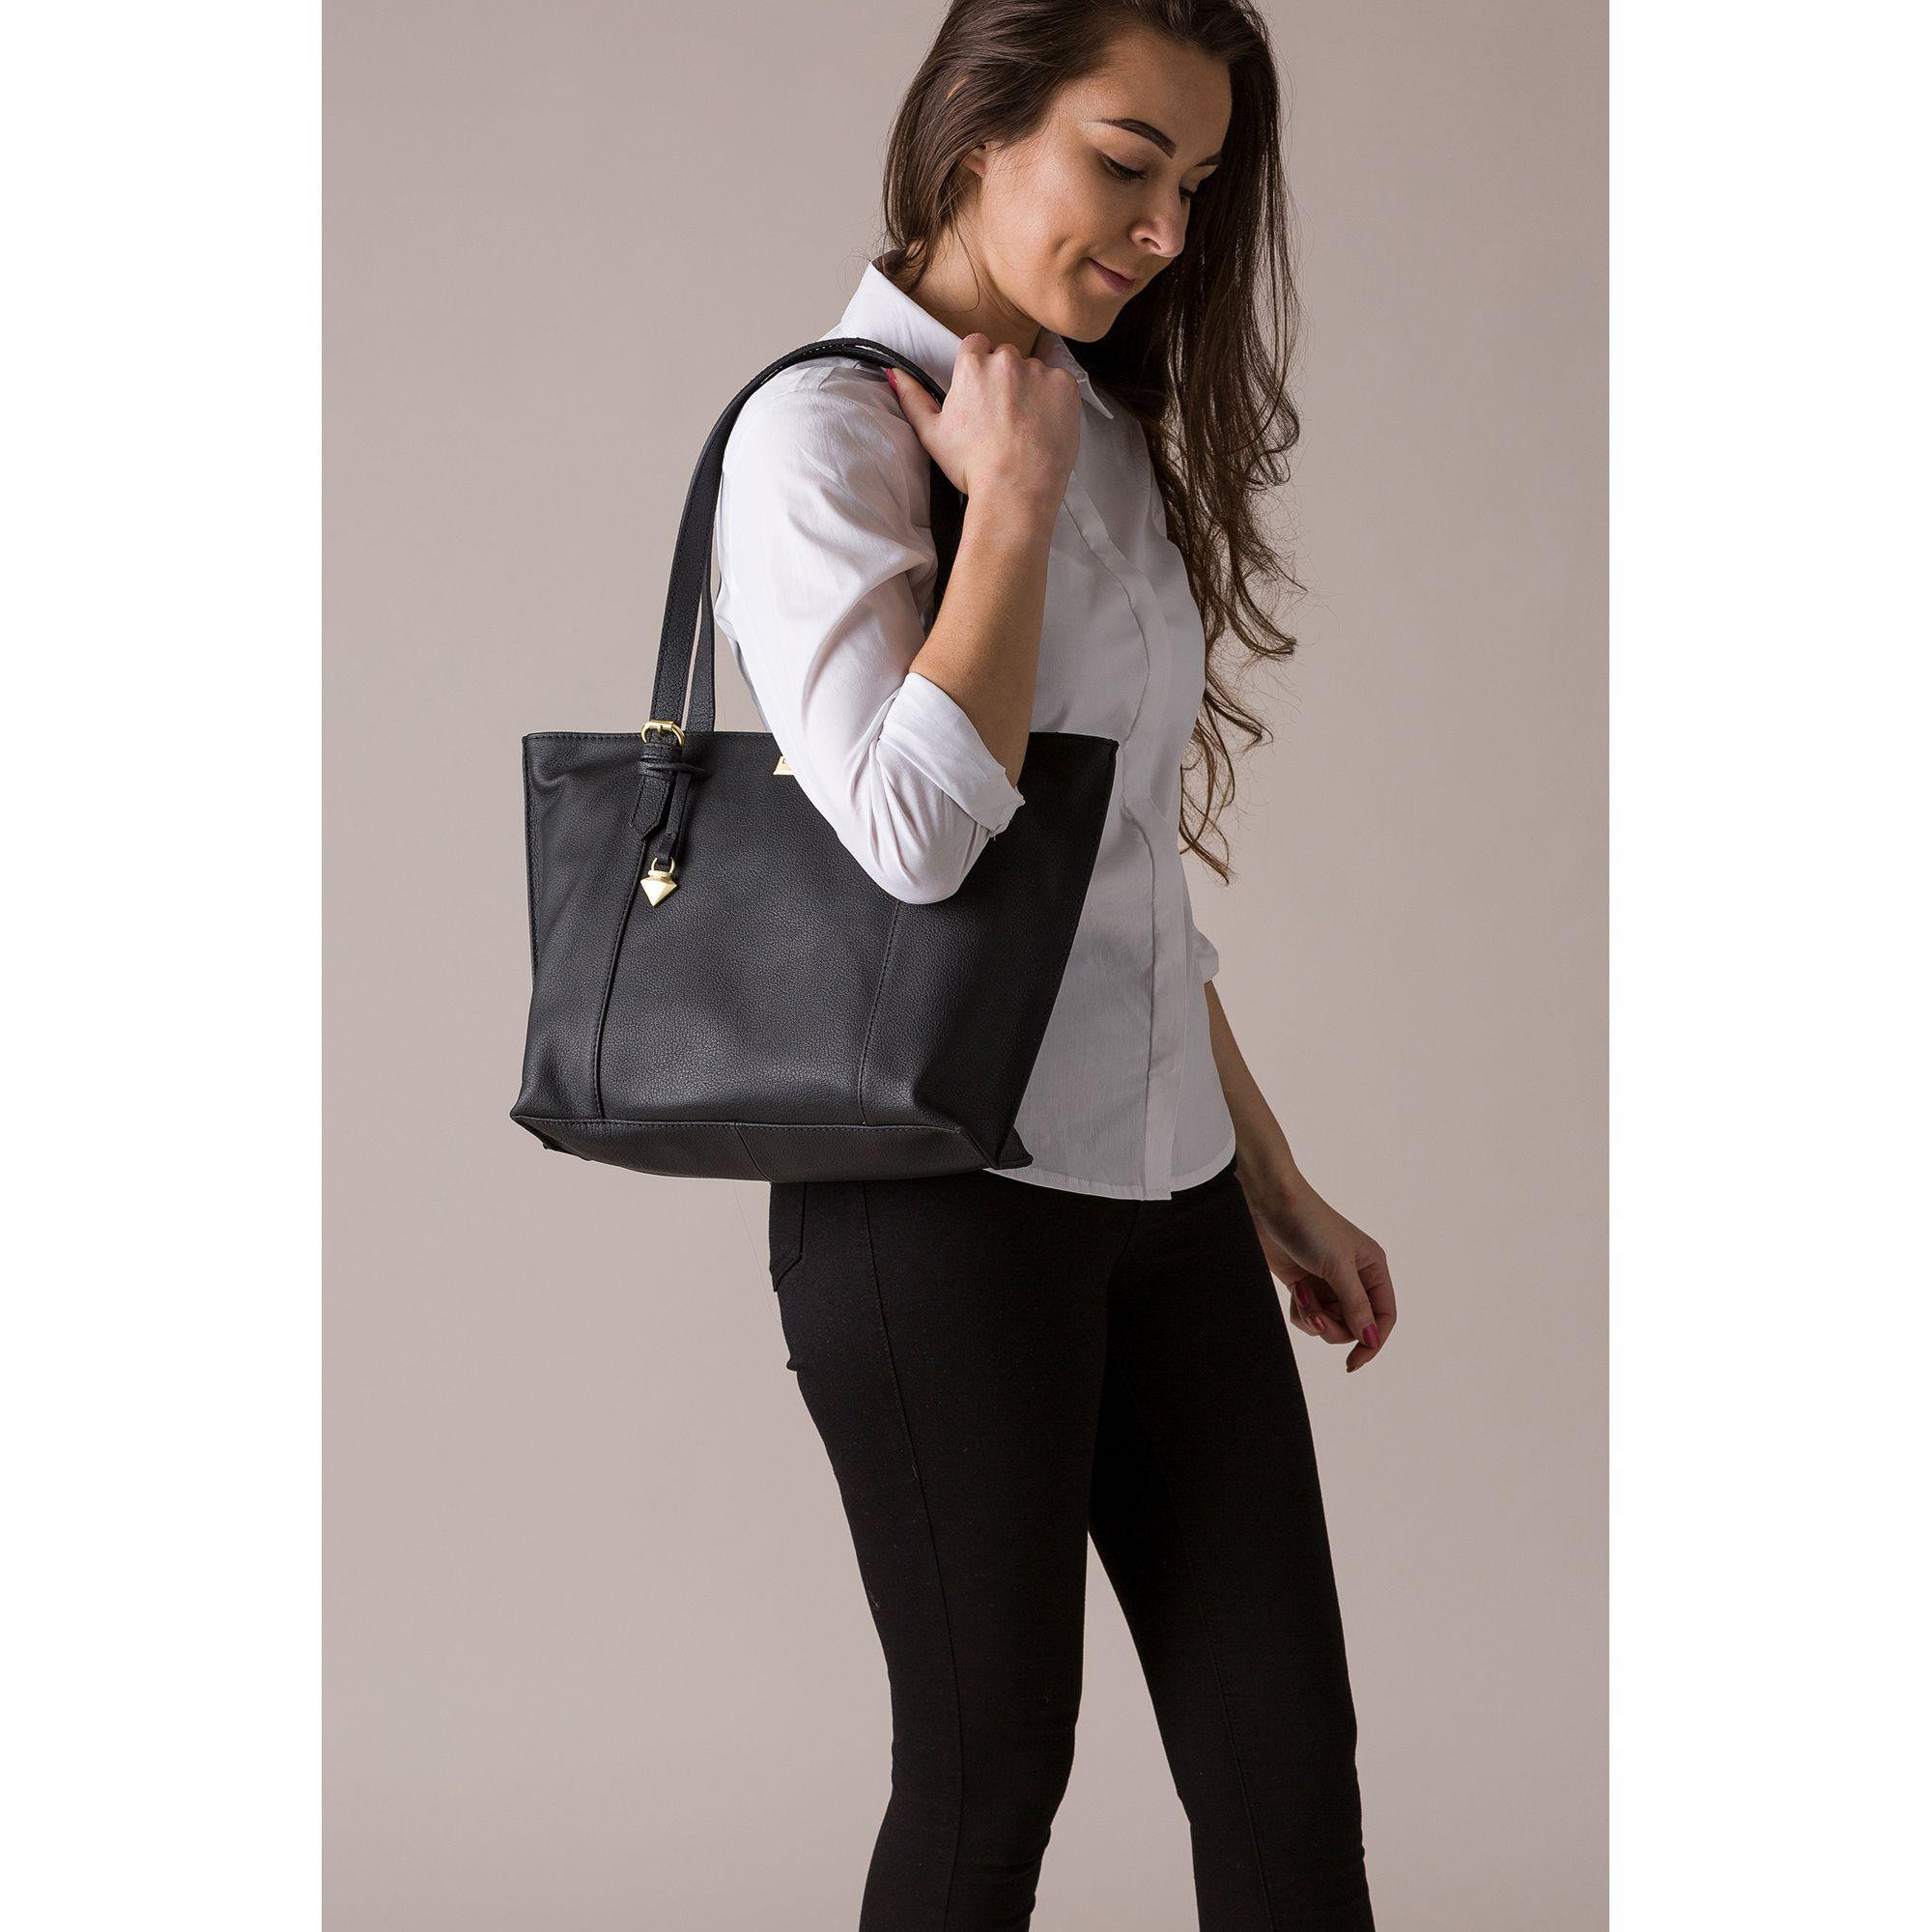 0130bb58773f Cultured London - Black  penny  Leather Tote Bag - Lyst. View fullscreen